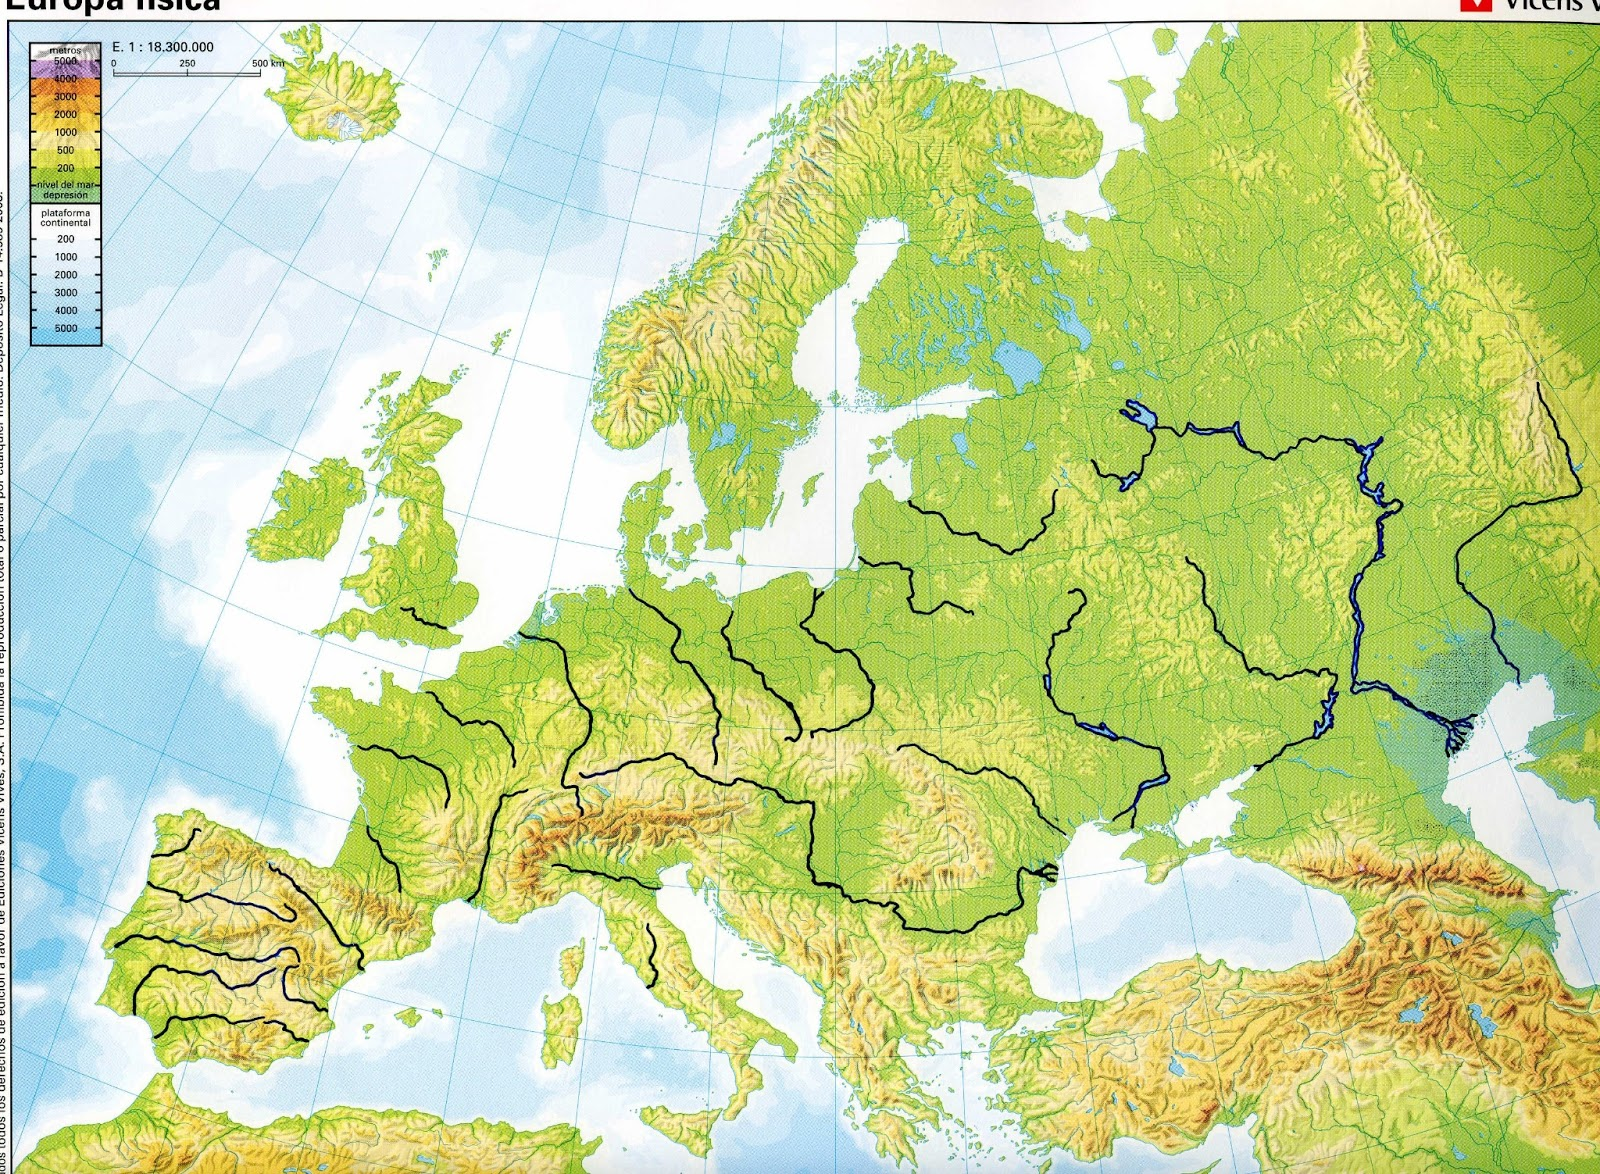 Geography and history blog wednesday maps review europe wednesday maps review europe gumiabroncs Images